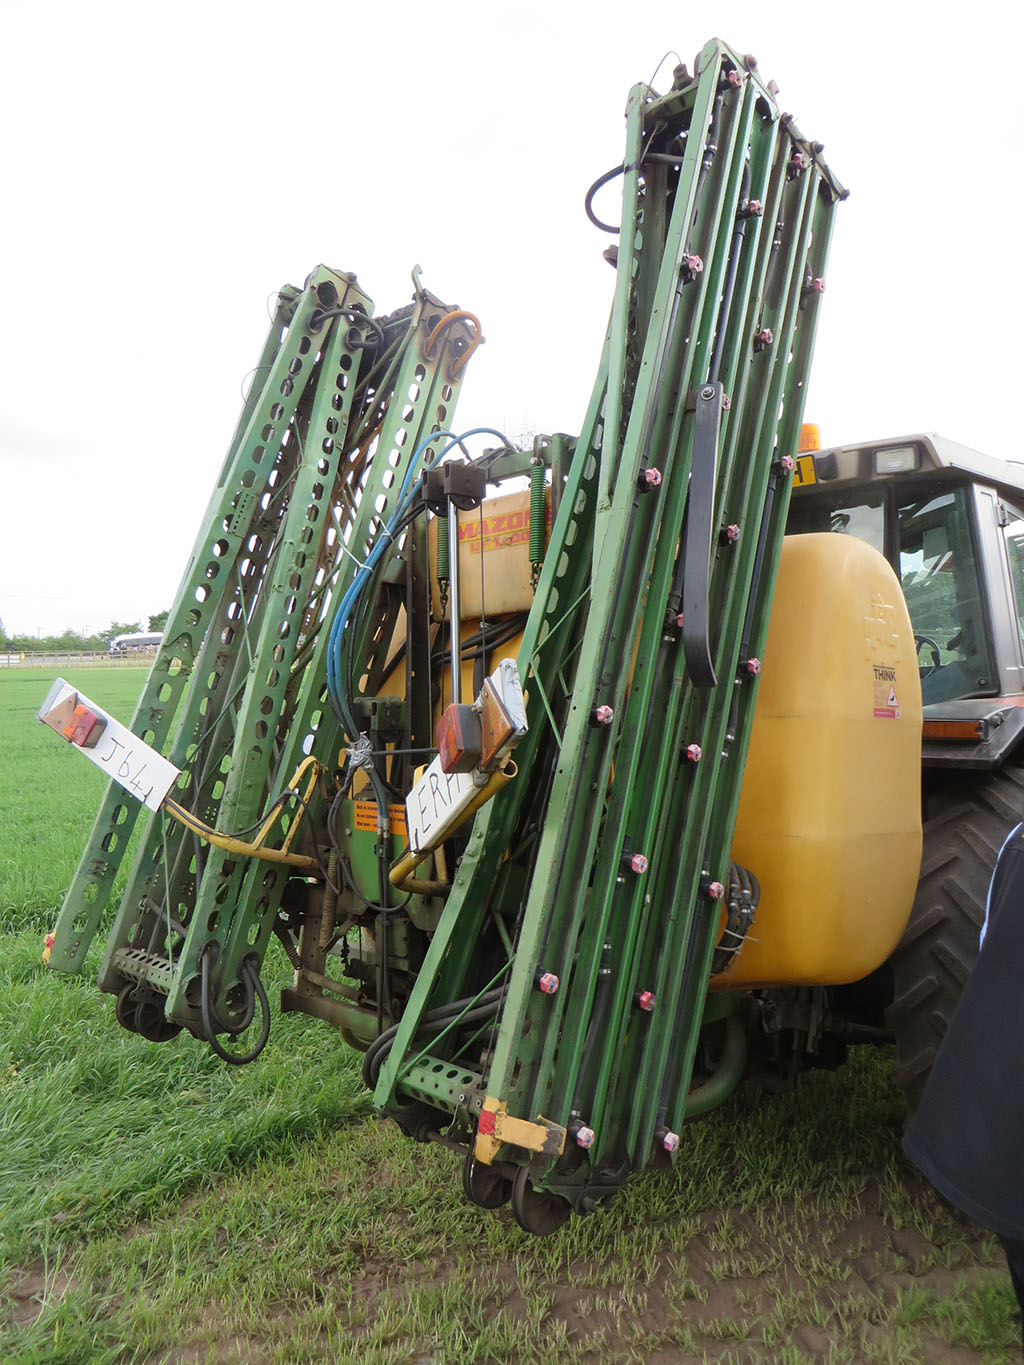 Fifty years of sprayers